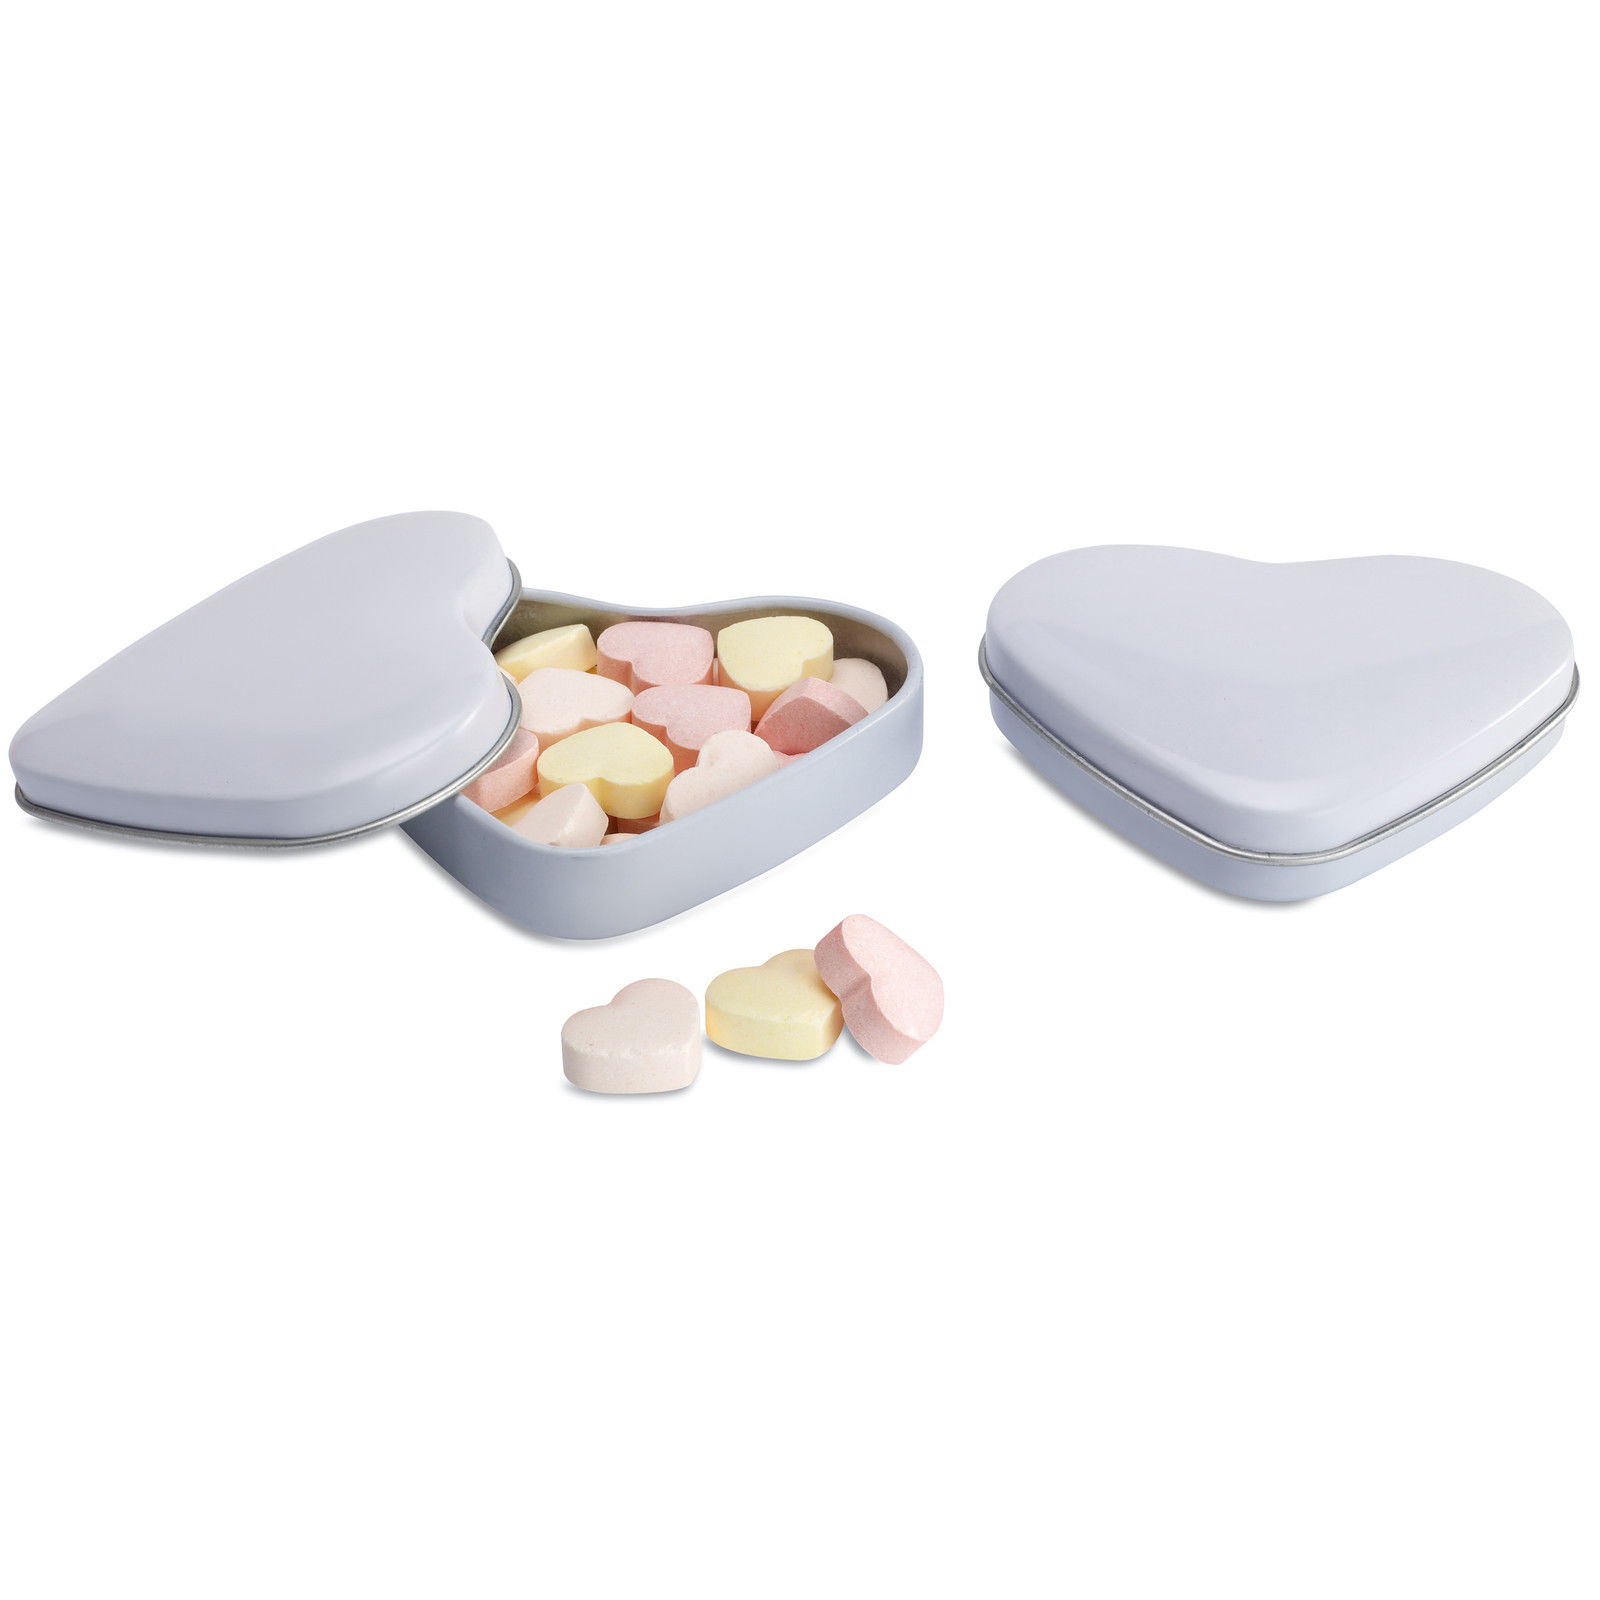 25 Pretty Heart Shaped Tins Containing Heart Shape Sweets Great ...